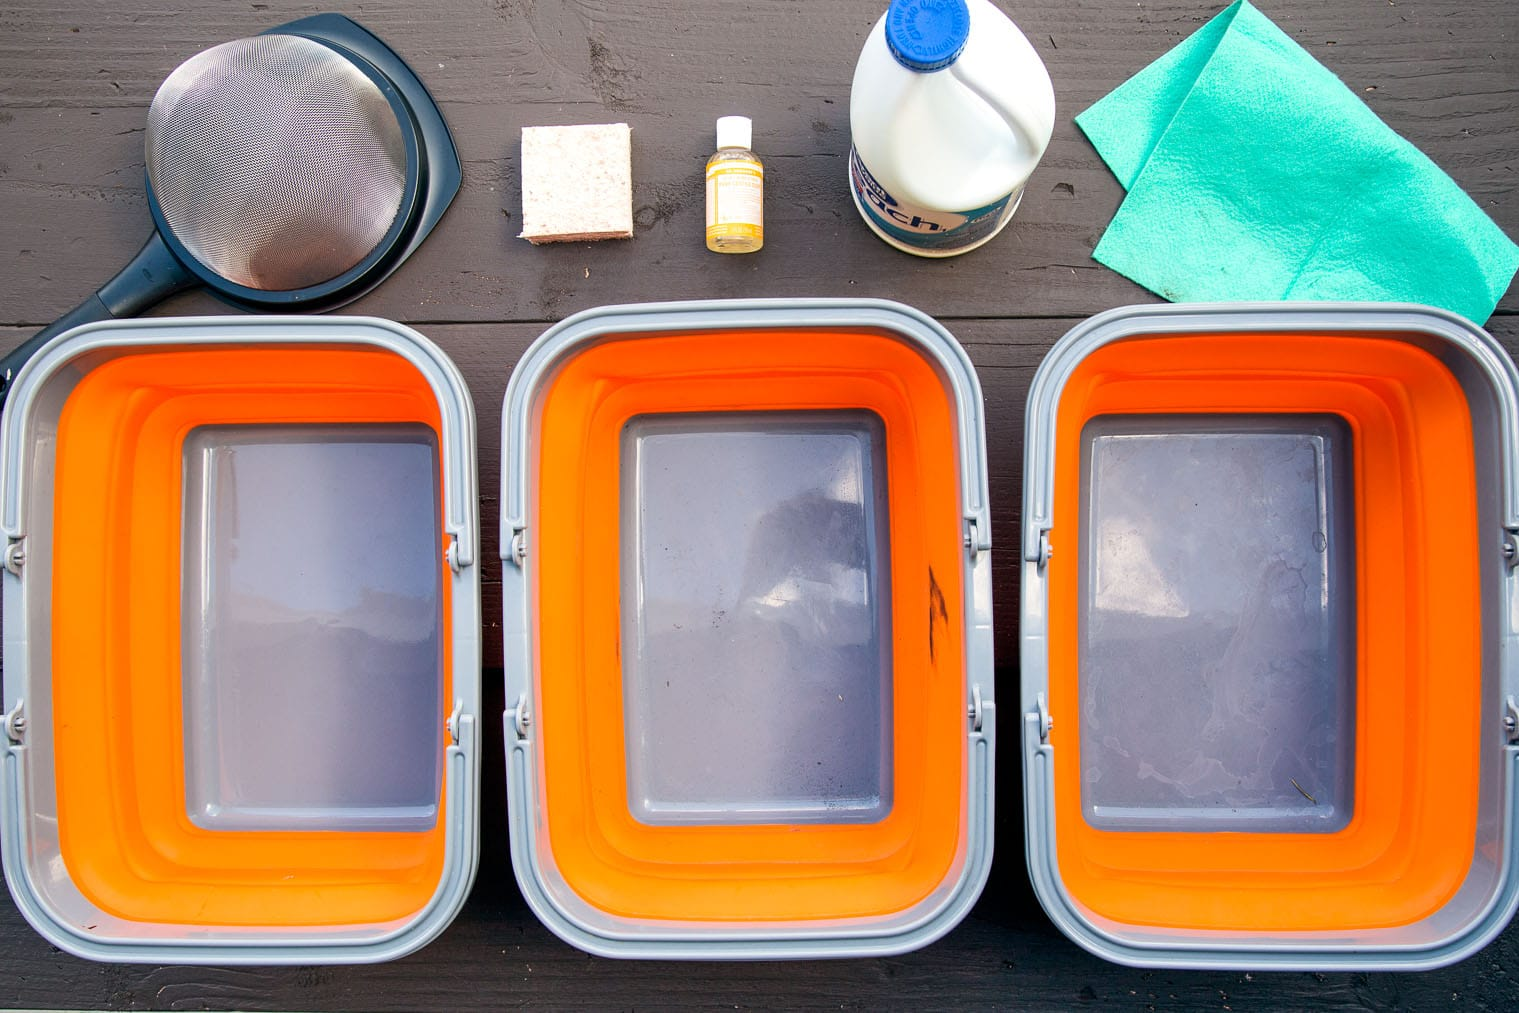 Equipment needed to set up a camping dishwashing station.